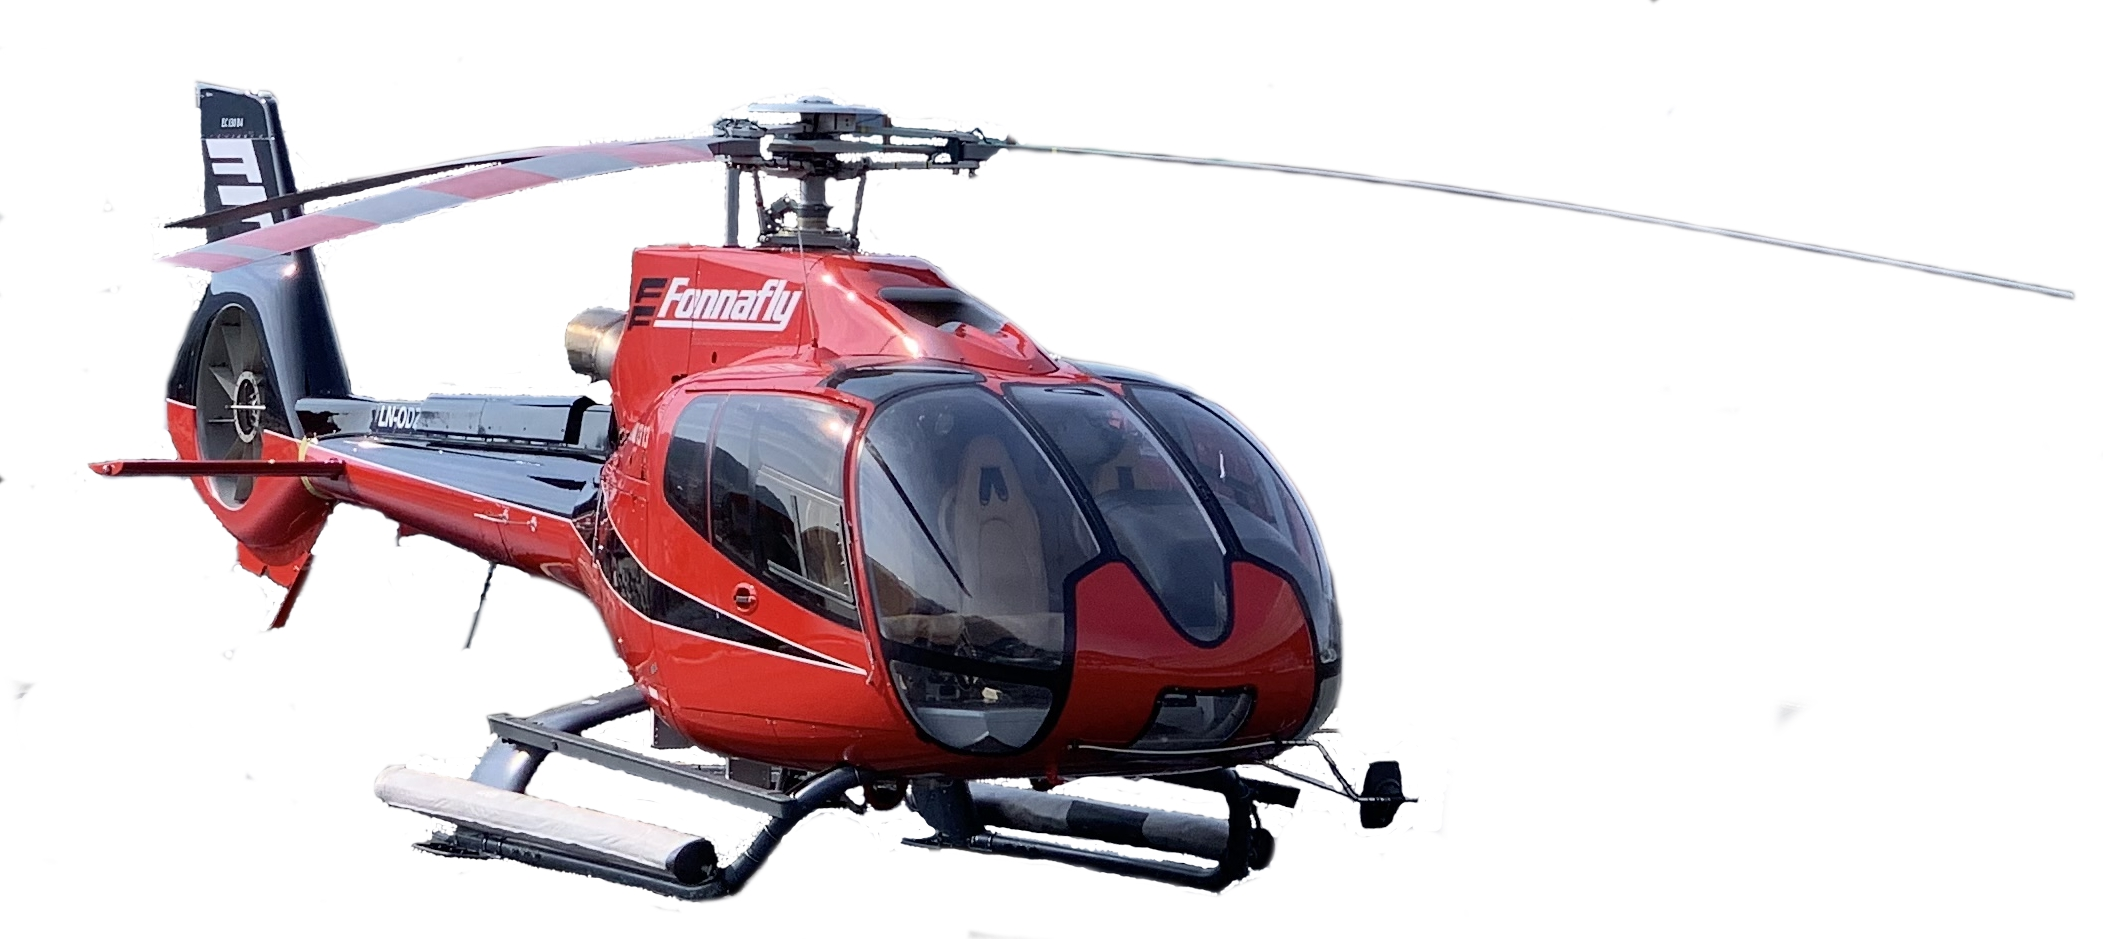 HeliGib - Fonnafly Gibraltar helicopte150£ per personr Service ma